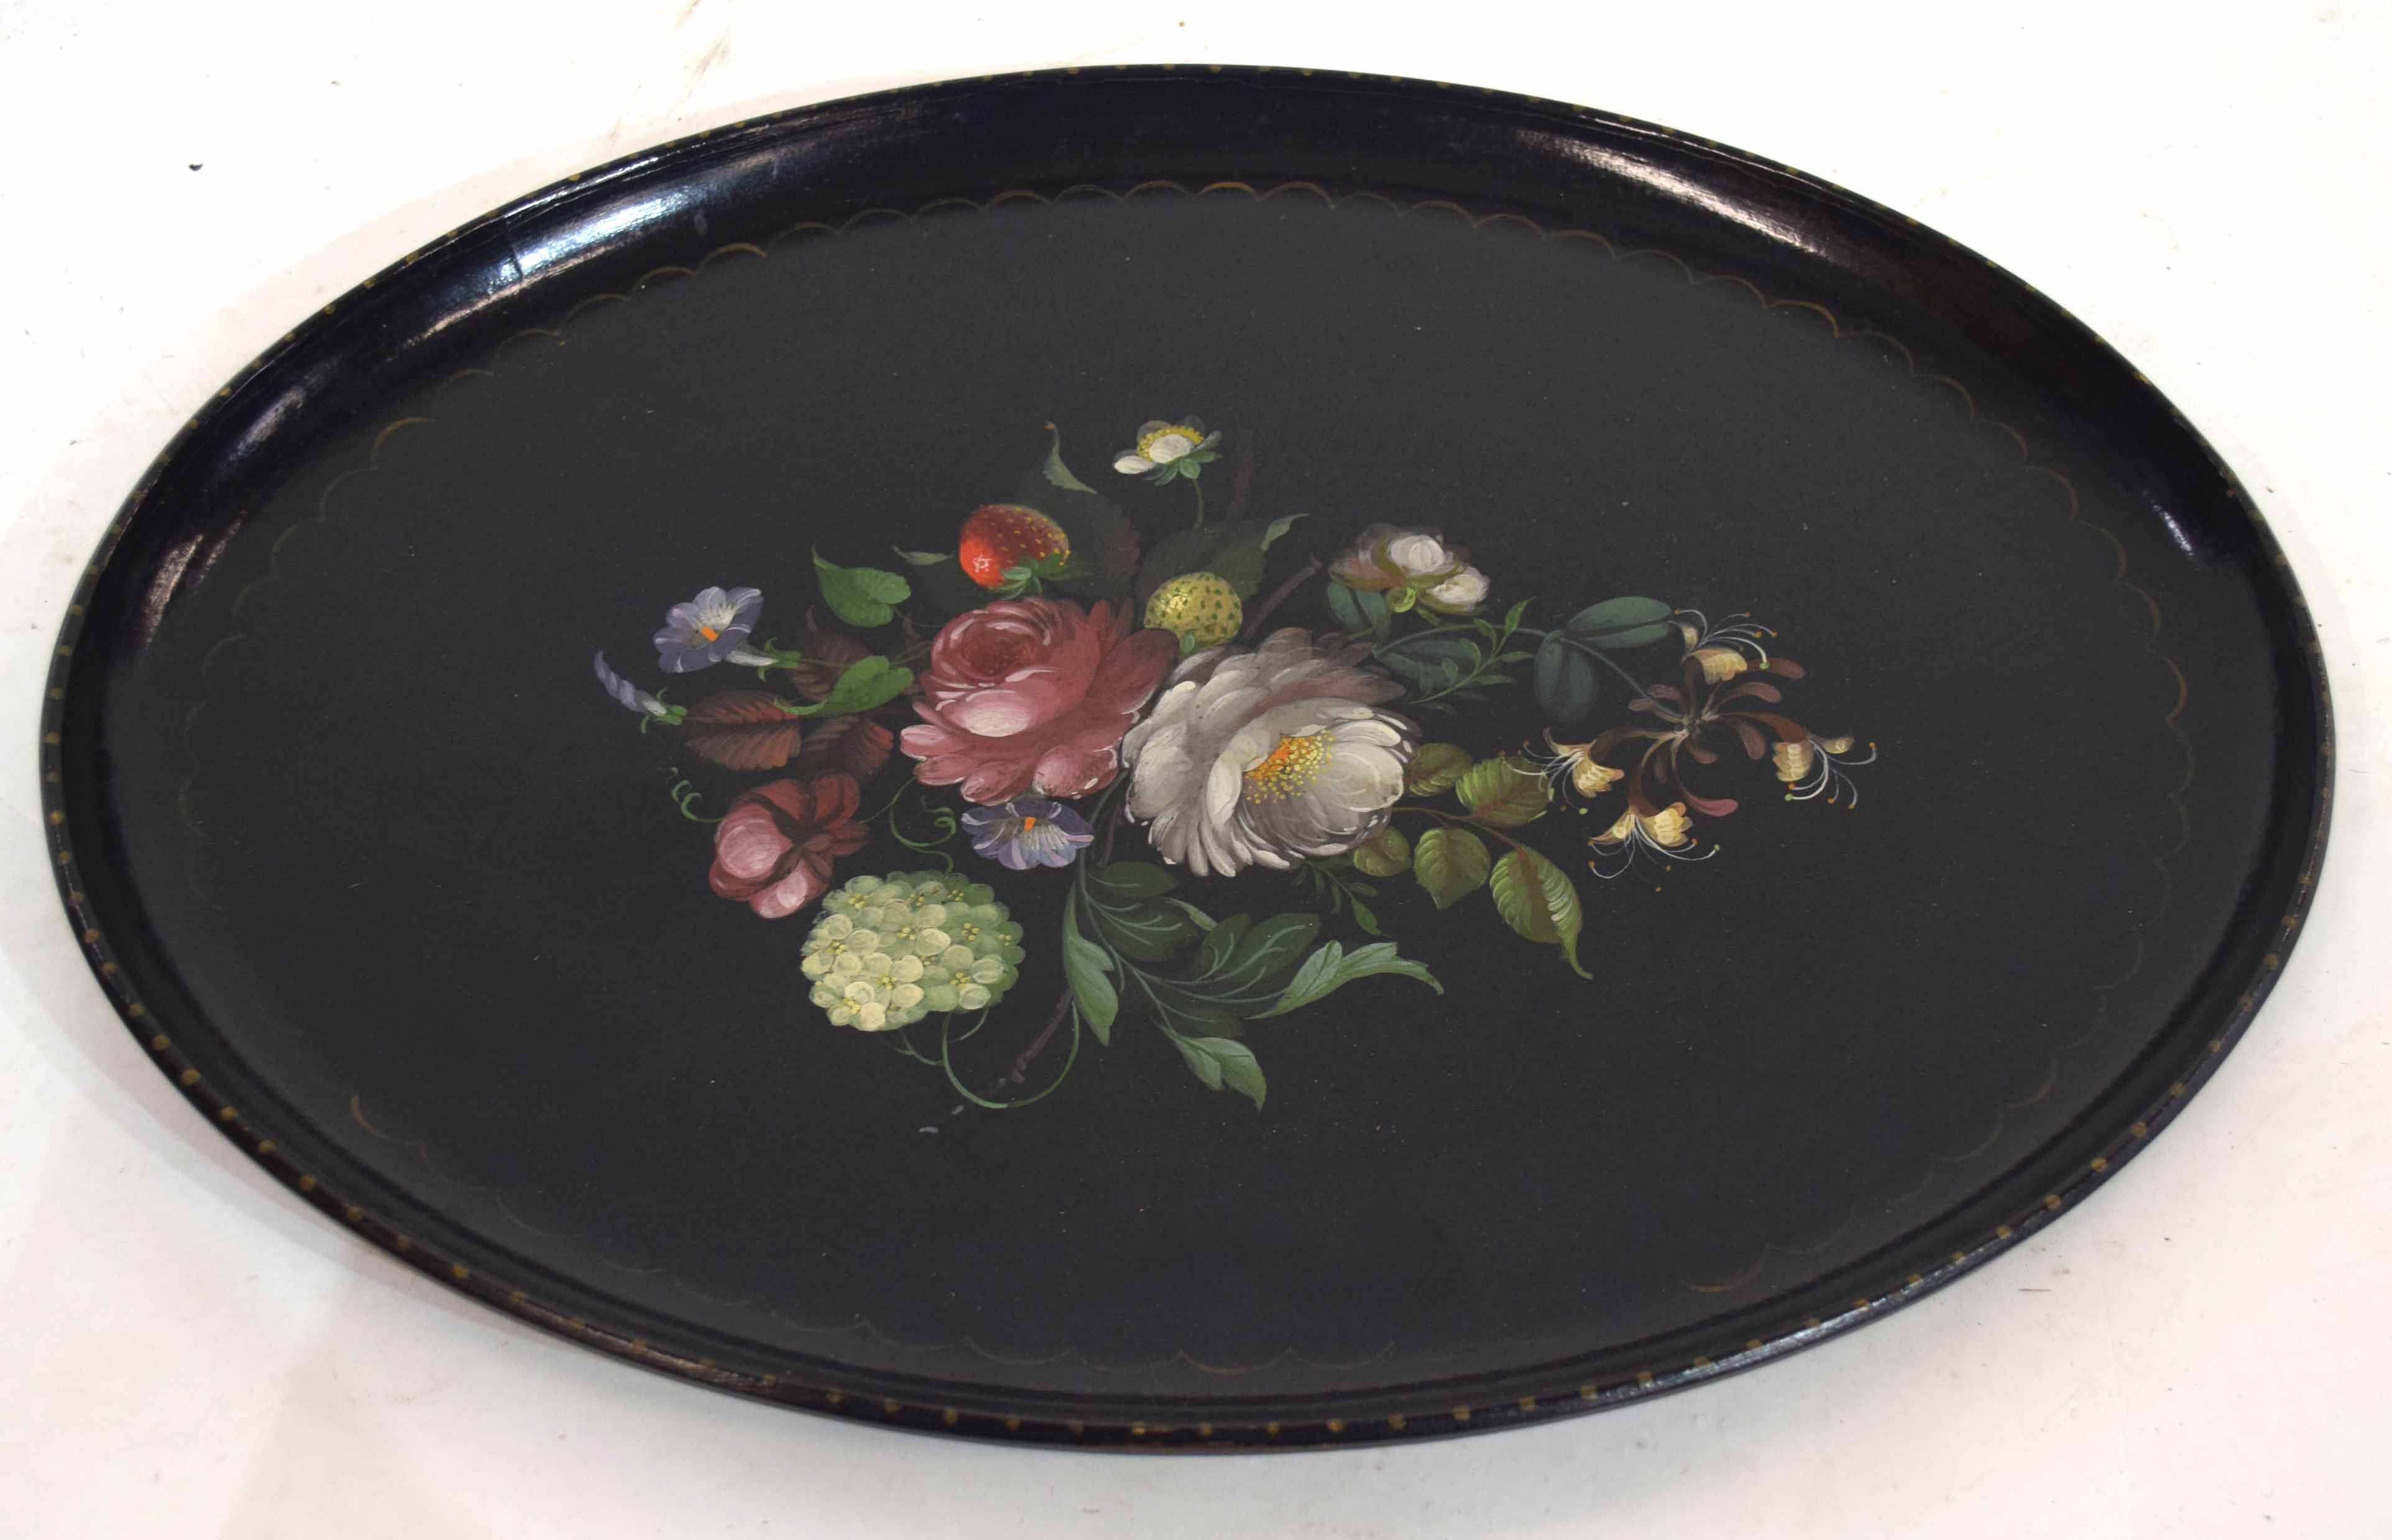 Papier mache type tray, the centre decorated with flowers and fruit within a loop border, 52cm - Image 2 of 2